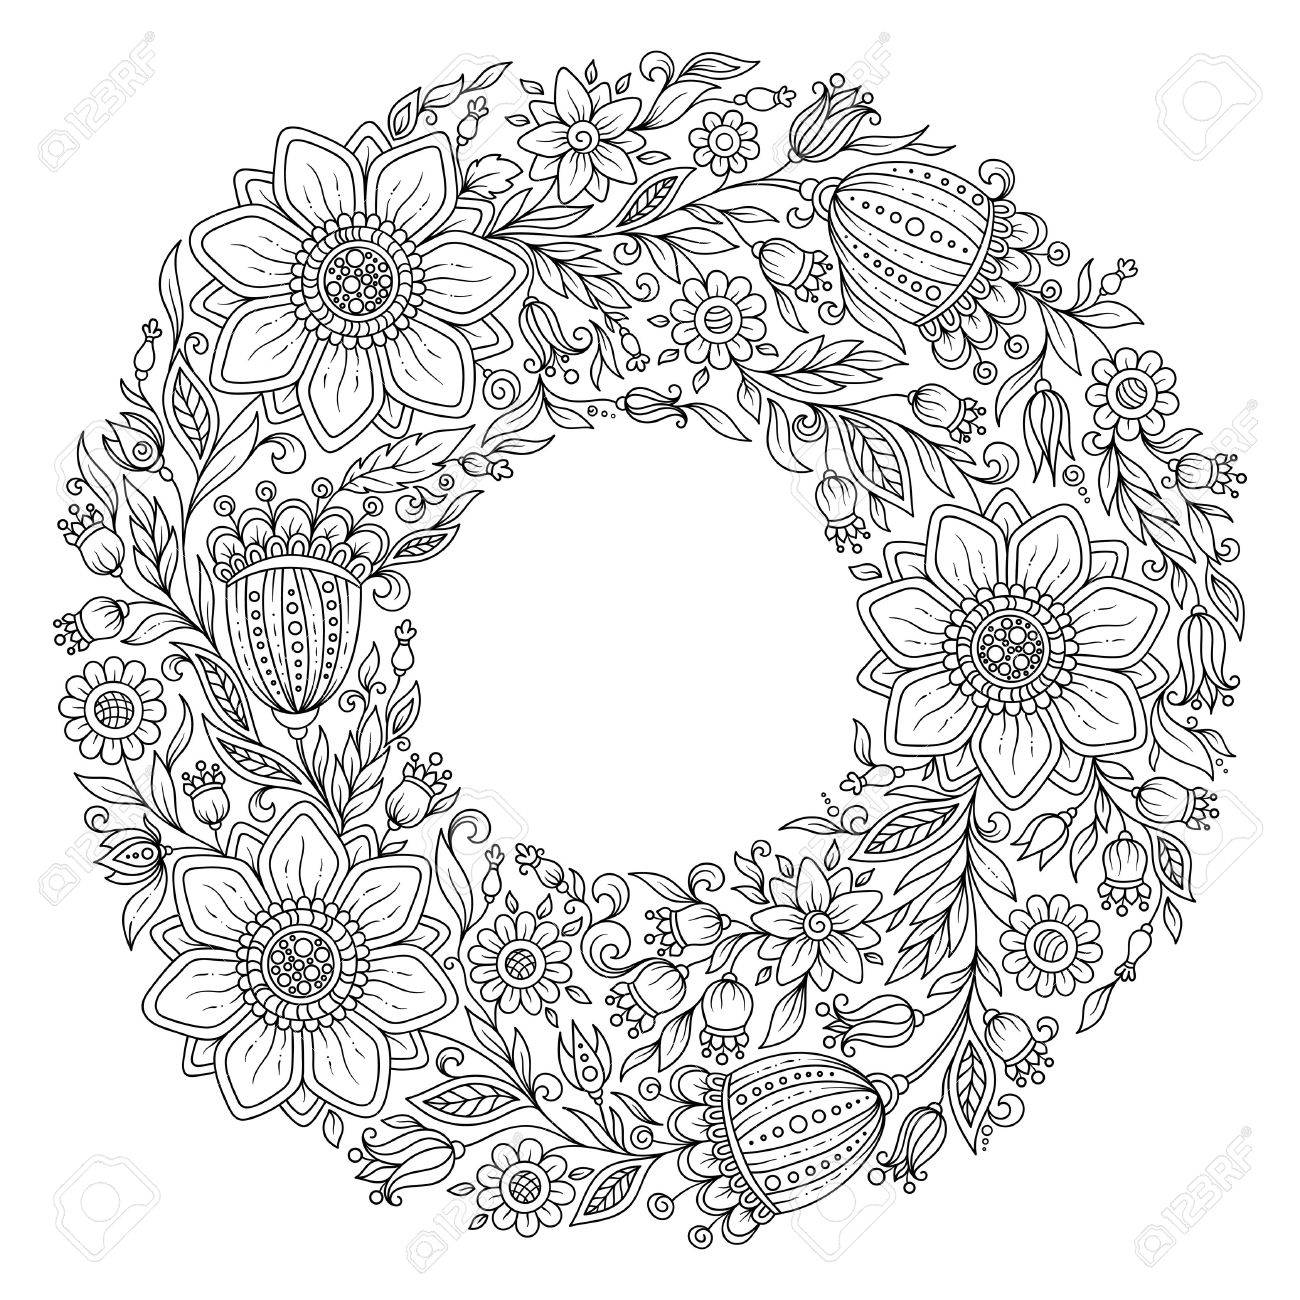 Flowers Wreath Coloring Book Page For Adult Stock Photo